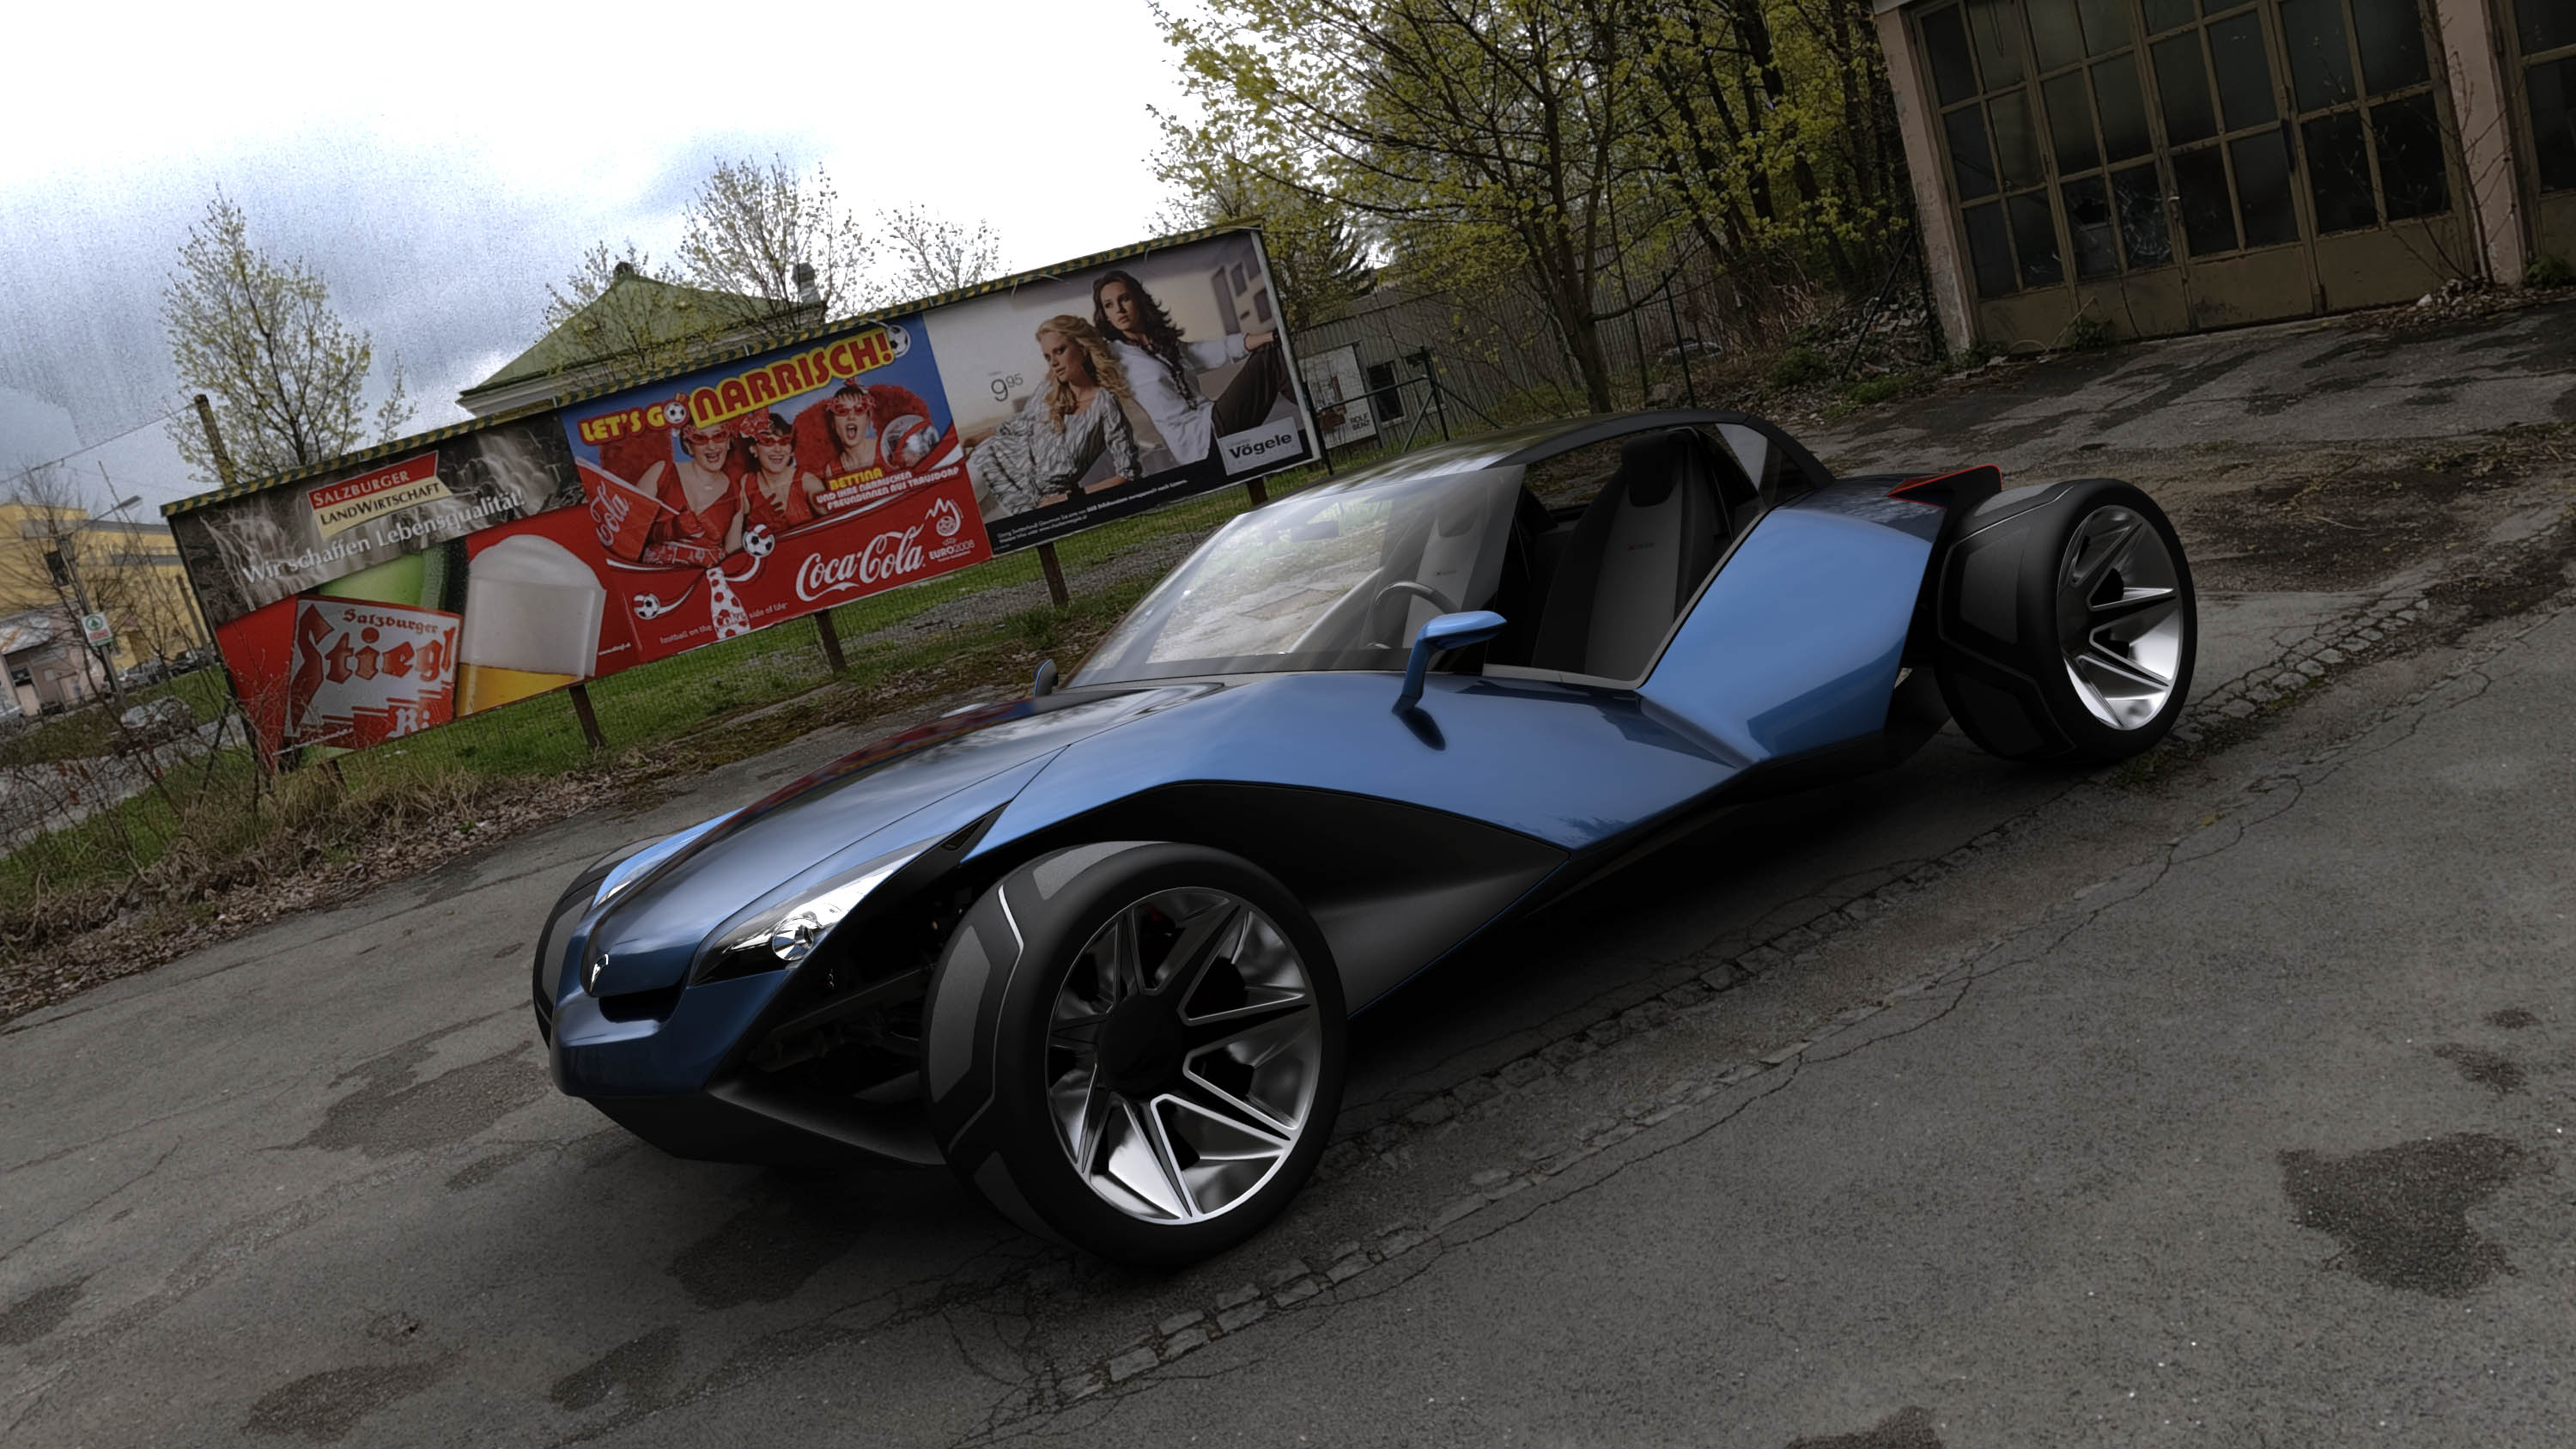 xseed concept part sports car part buggy all hybrid. Black Bedroom Furniture Sets. Home Design Ideas